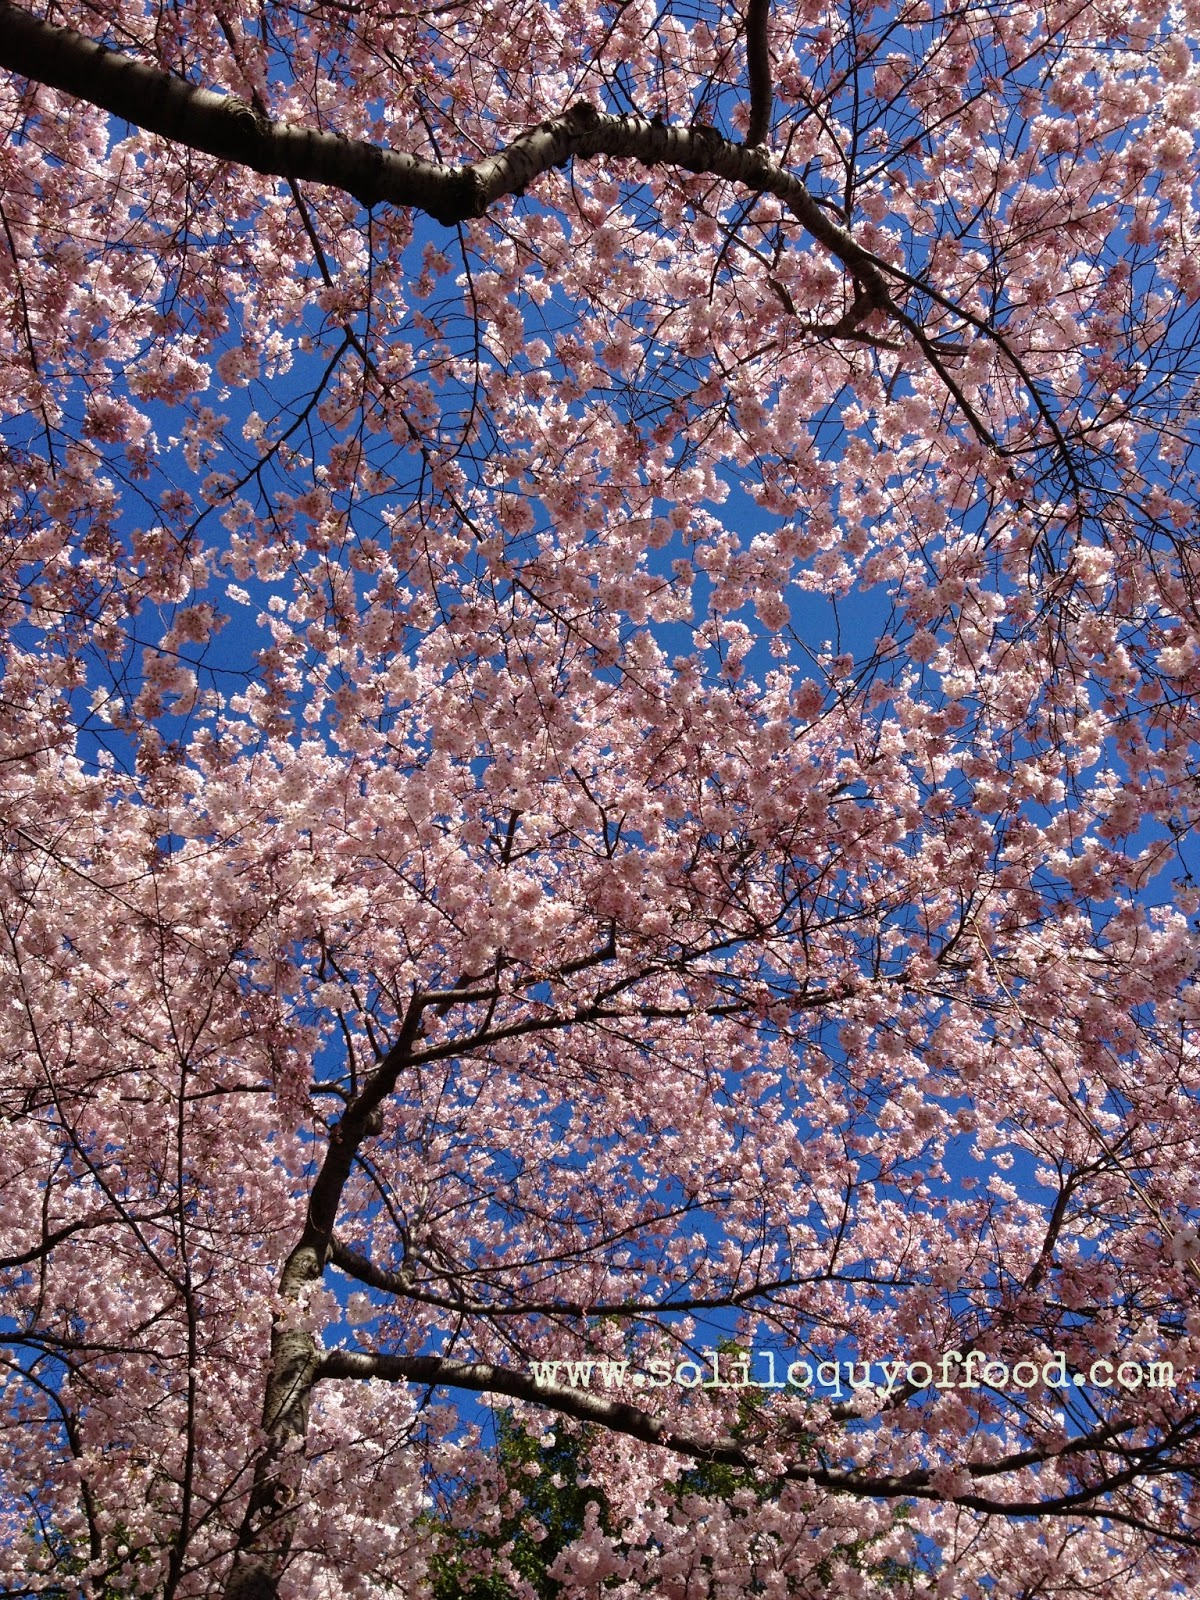 Cherry Blossoms 2014 - www.soliloquyoffood.com